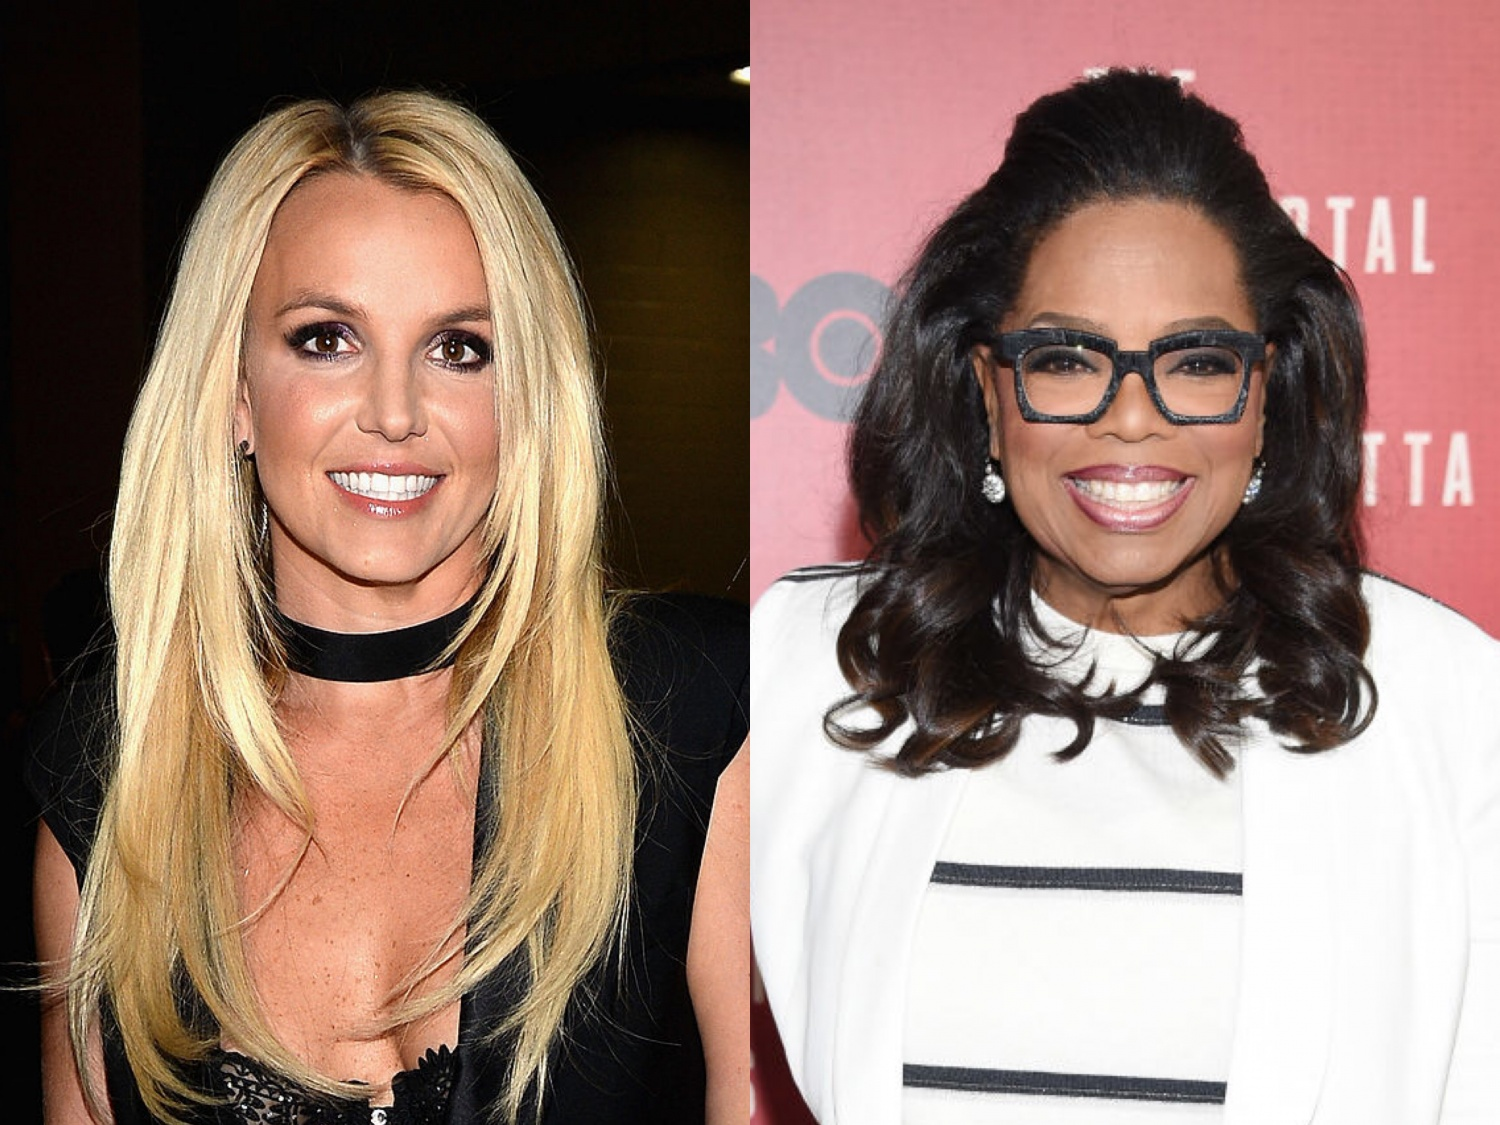 Britney Spears and Oprah Winfrey